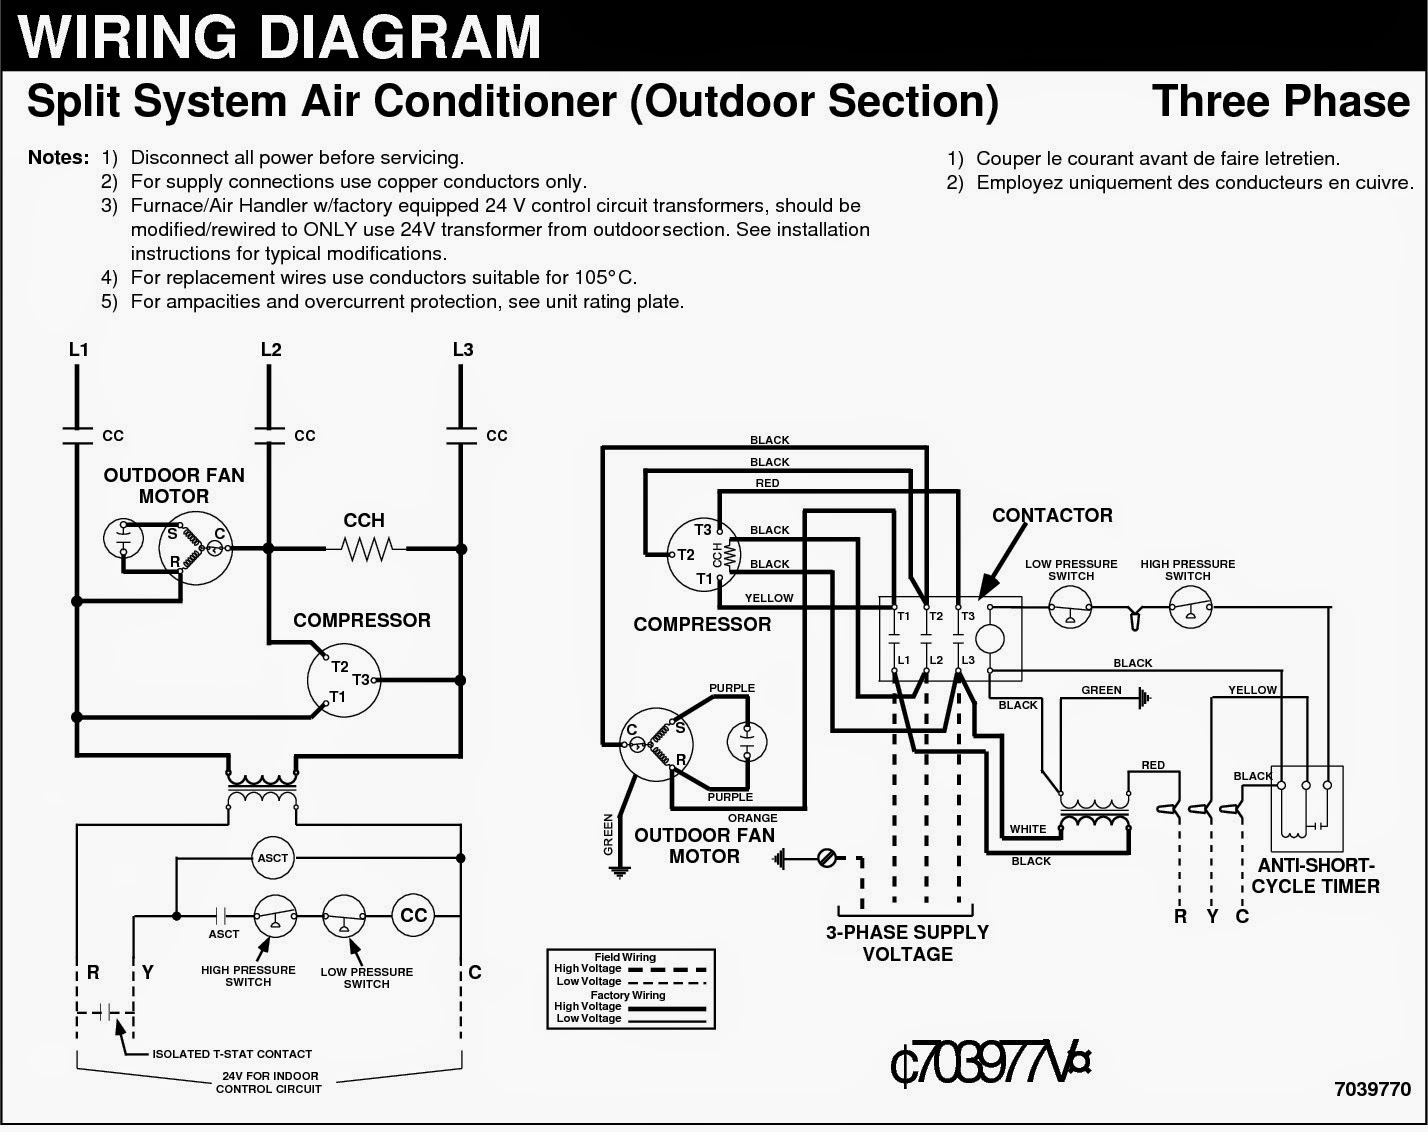 3+phase electrical wiring diagrams for air conditioning systems part two ac wiring diagram at crackthecode.co